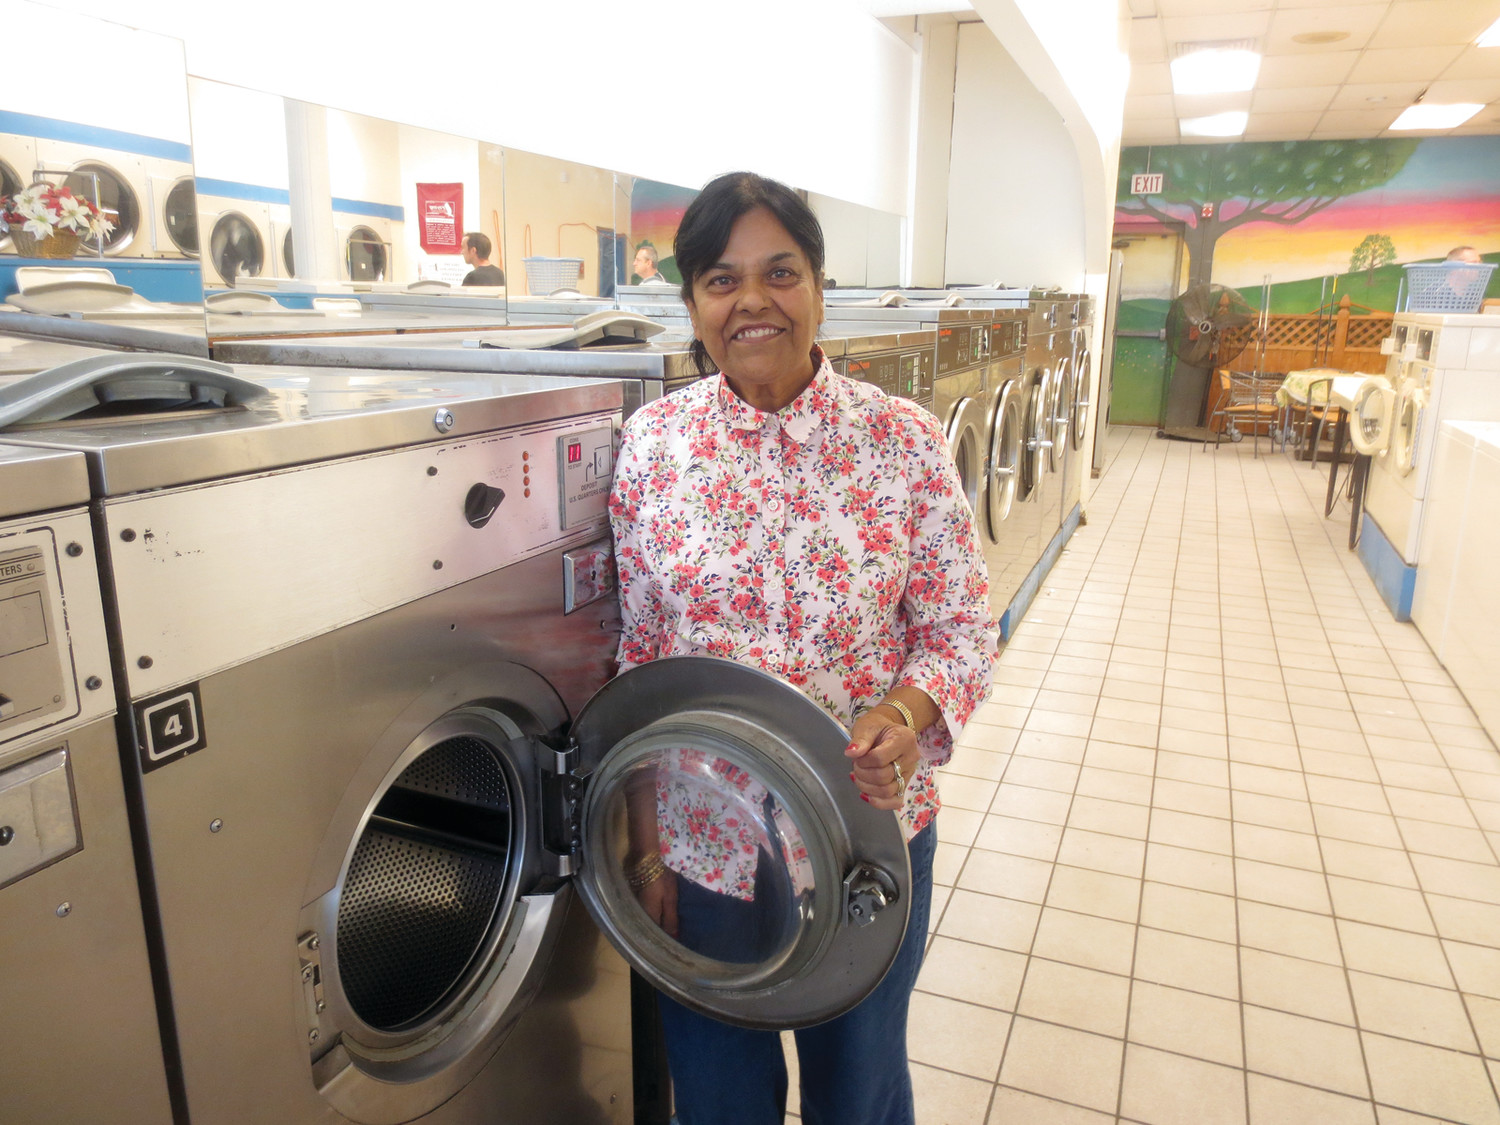 Kaushal Jain is a familiar face at the family-owned business that she and her husband have operated for over twenty-five years ~ here, she is ready to fold a load of clothes, straight from one of the laundromat's modern dryers.